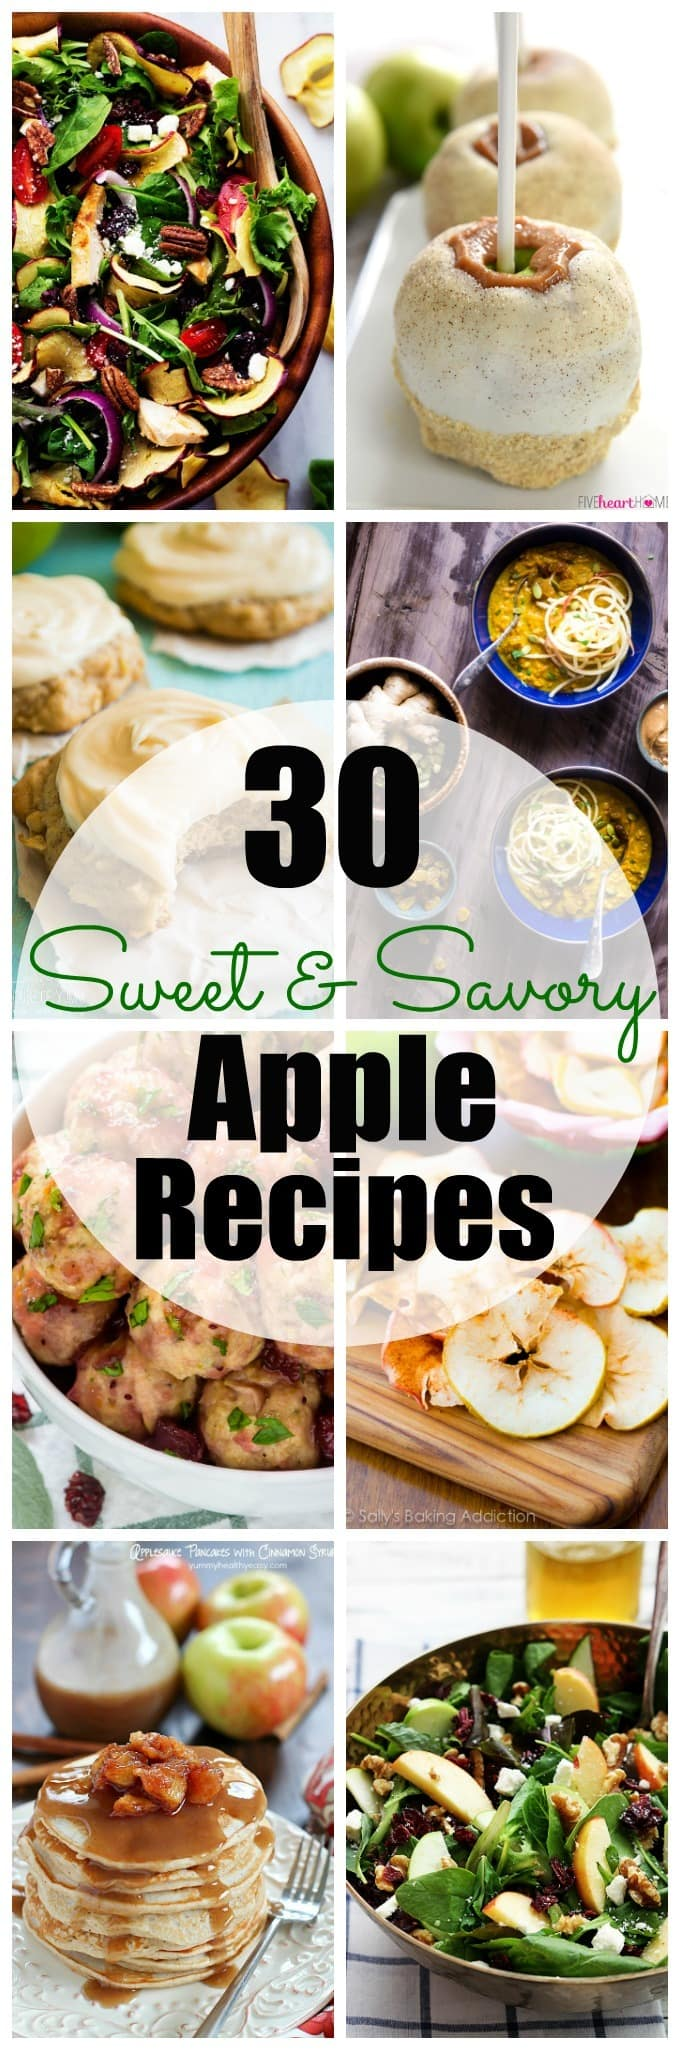 Enjoy apple season with these 30 Sweet & Savory Apple Recipes!